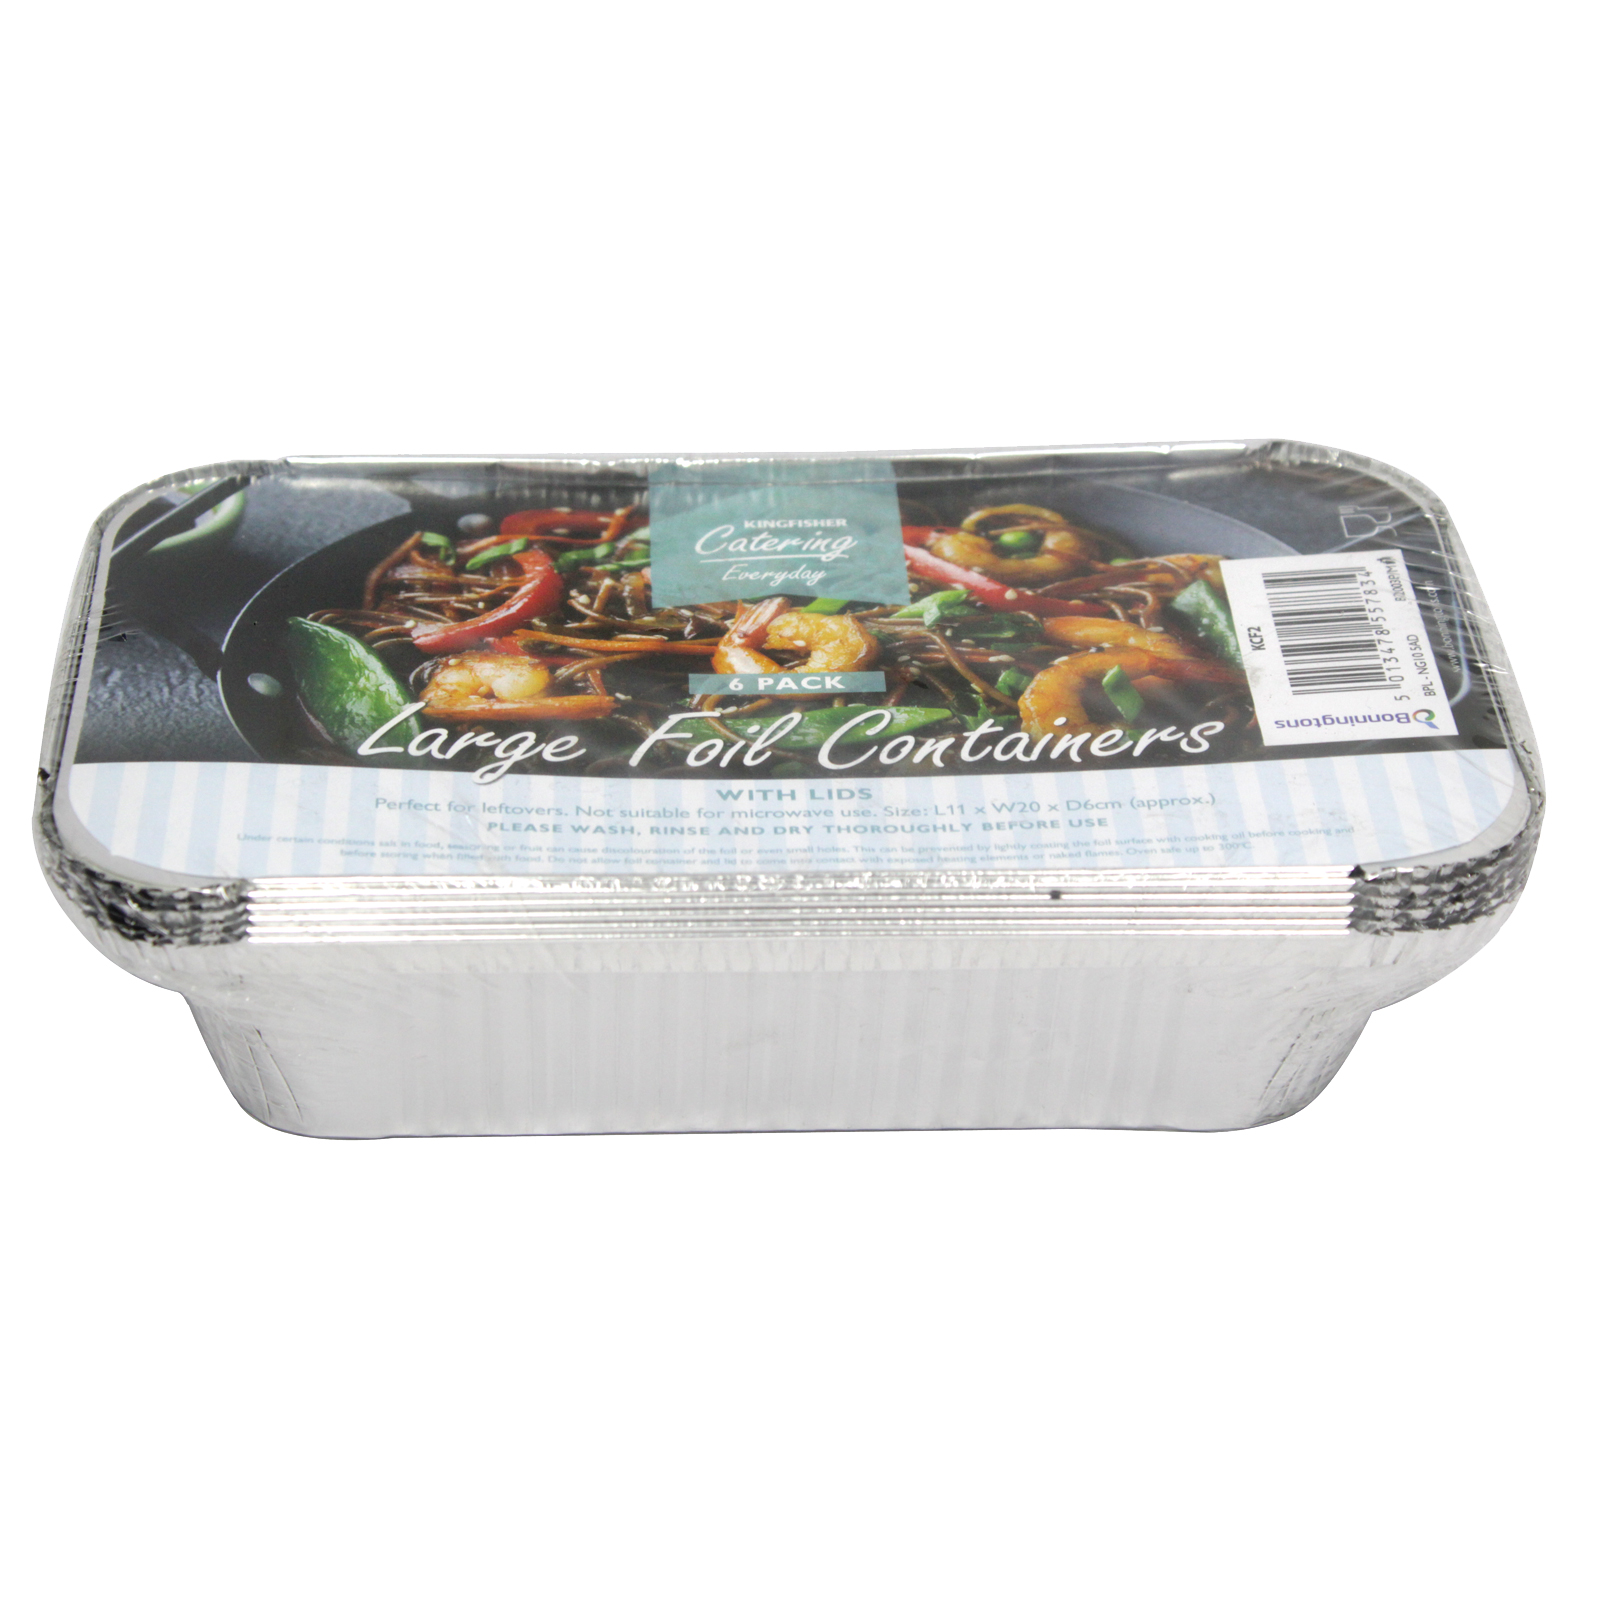 KINGFISHER 6PK LGE FOIL CONTAINER+LID